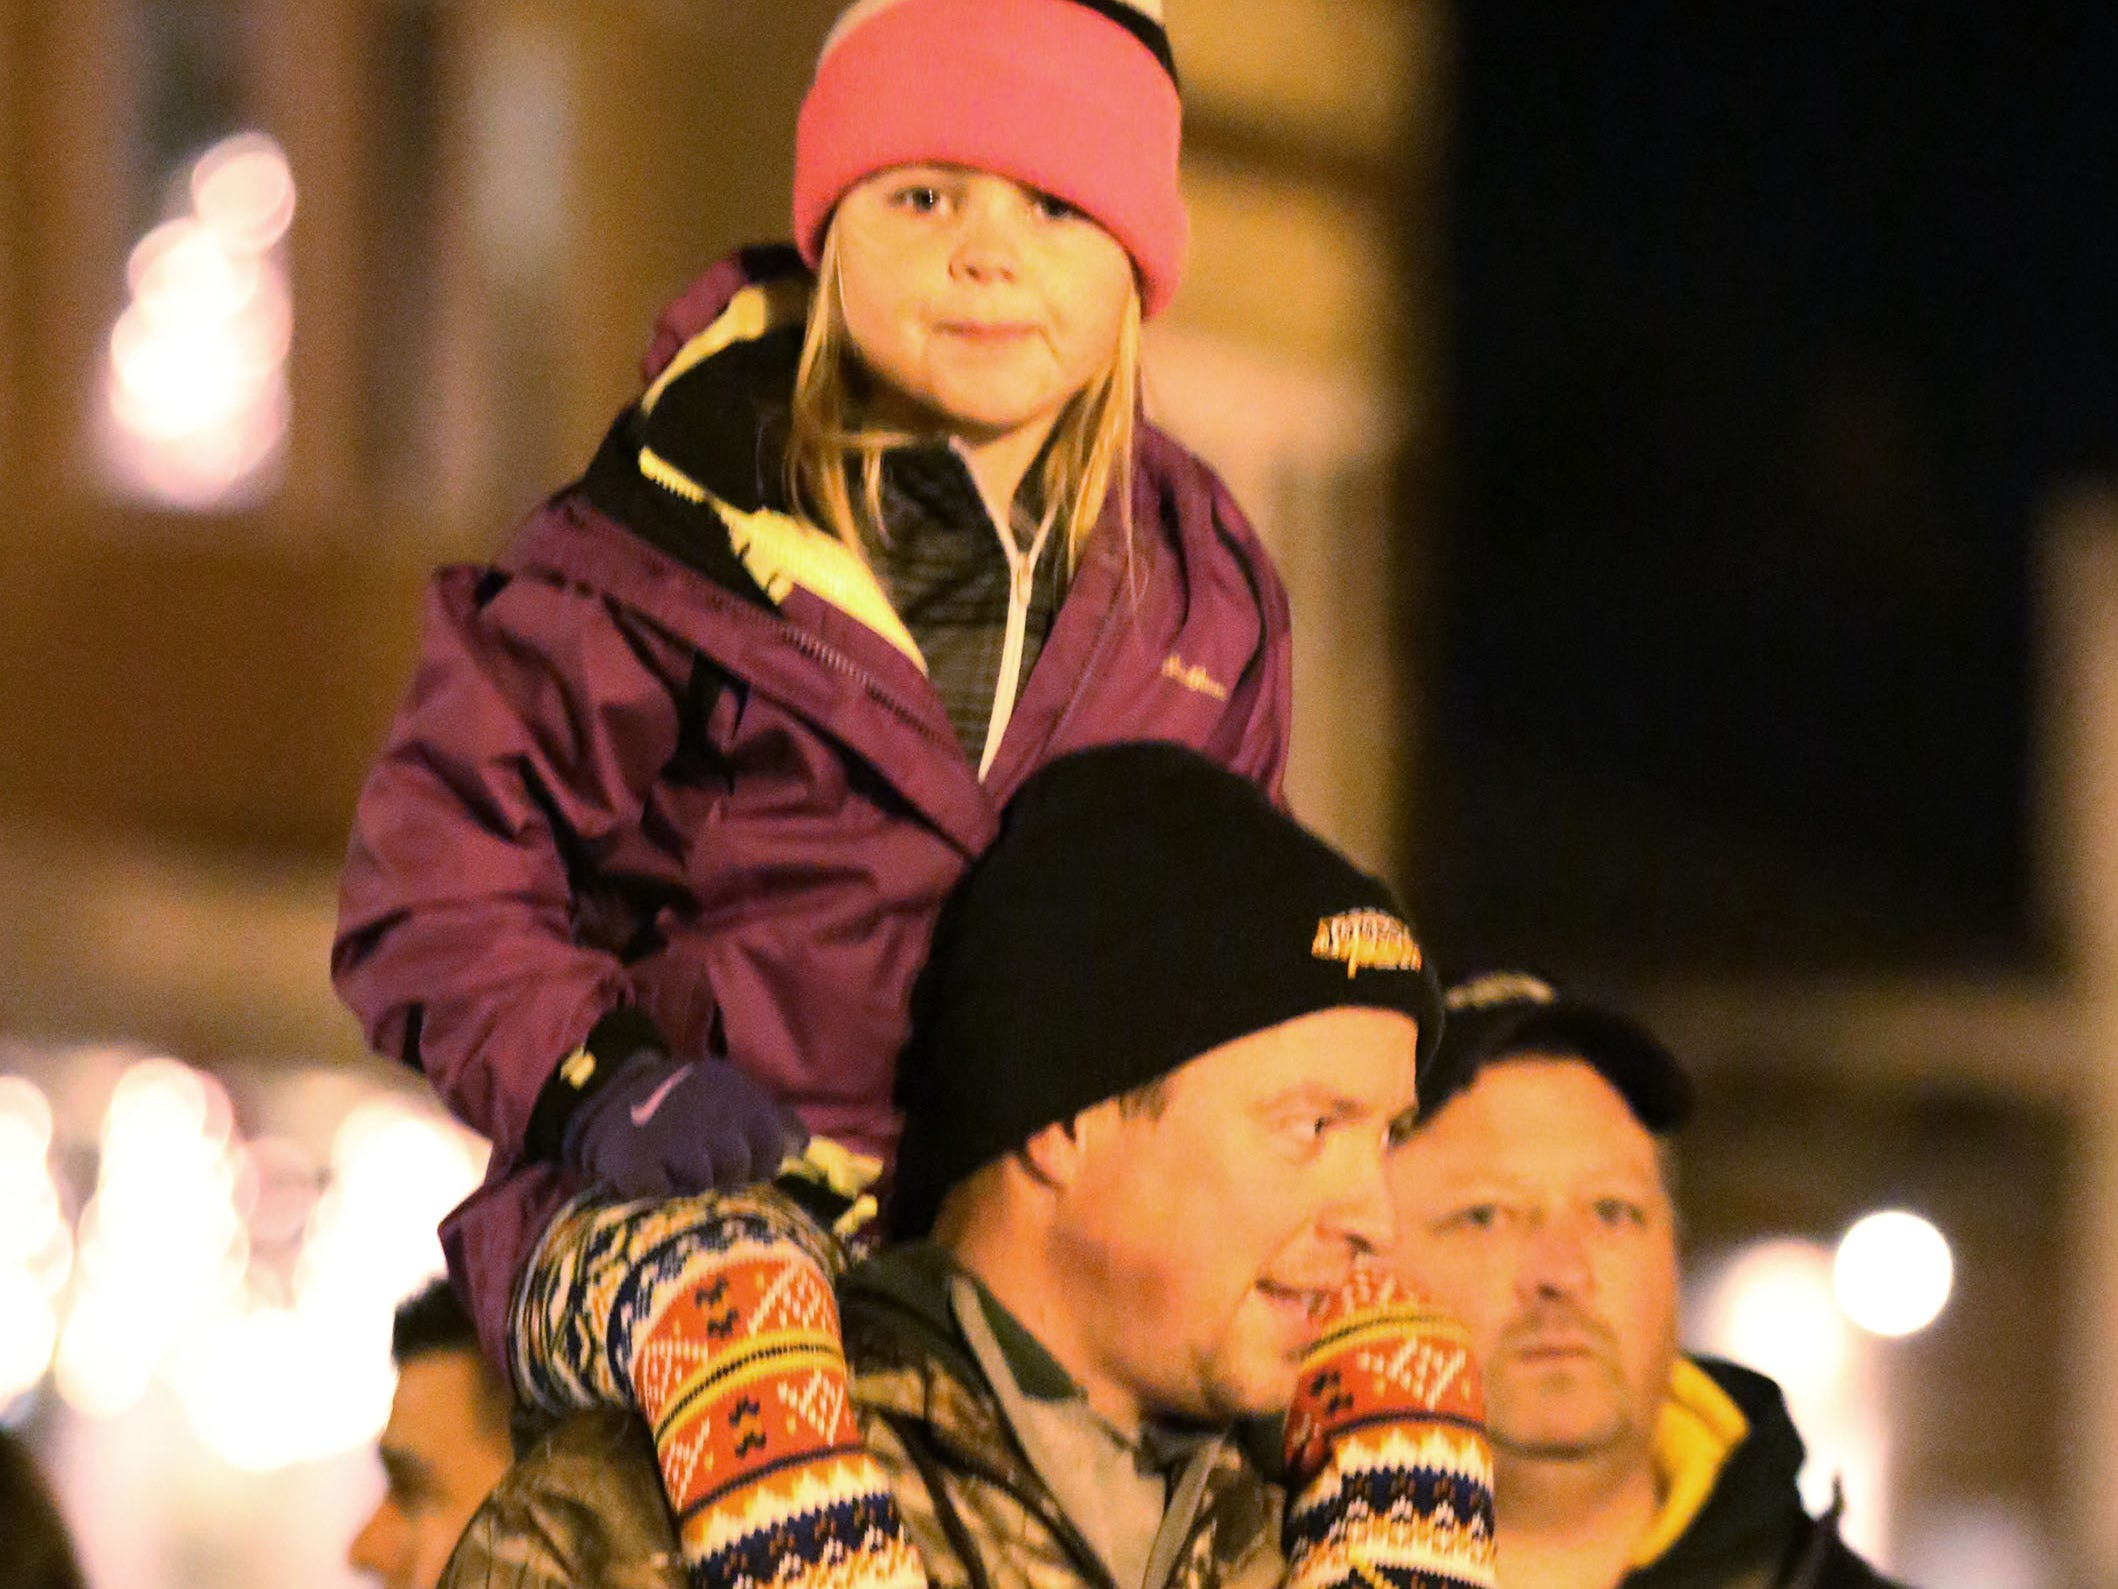 Jake Ratajczak of Oostburg, lets his daughter Nora, 5, have a better view at the Oostburg Christmas Parade, Saturday, November 24, 2018, in Oostburg, Wis.